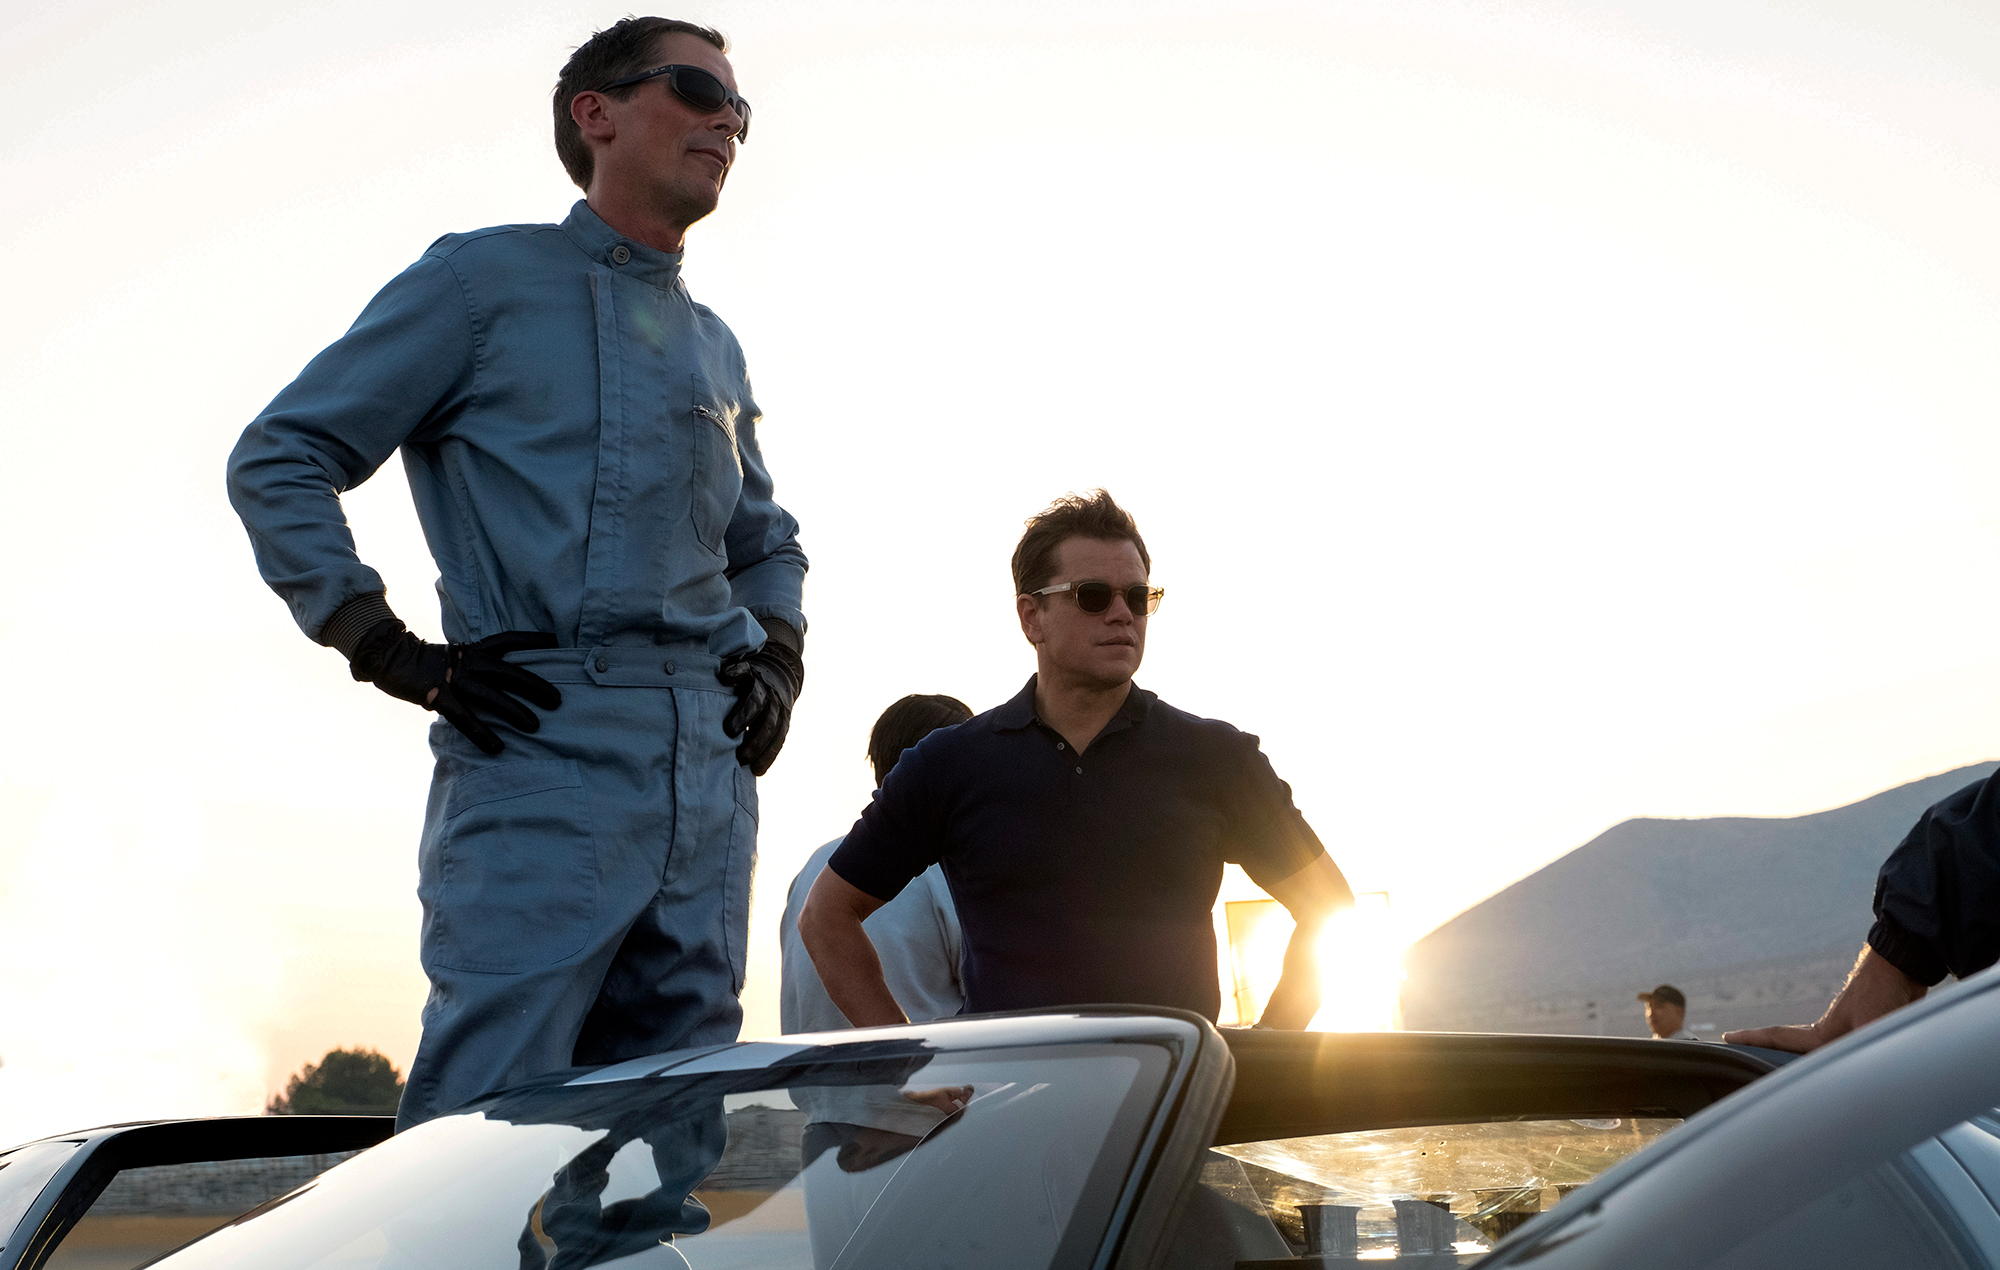 'Le Mans '66' review: sluggish auto-based drama never gets out of third gear